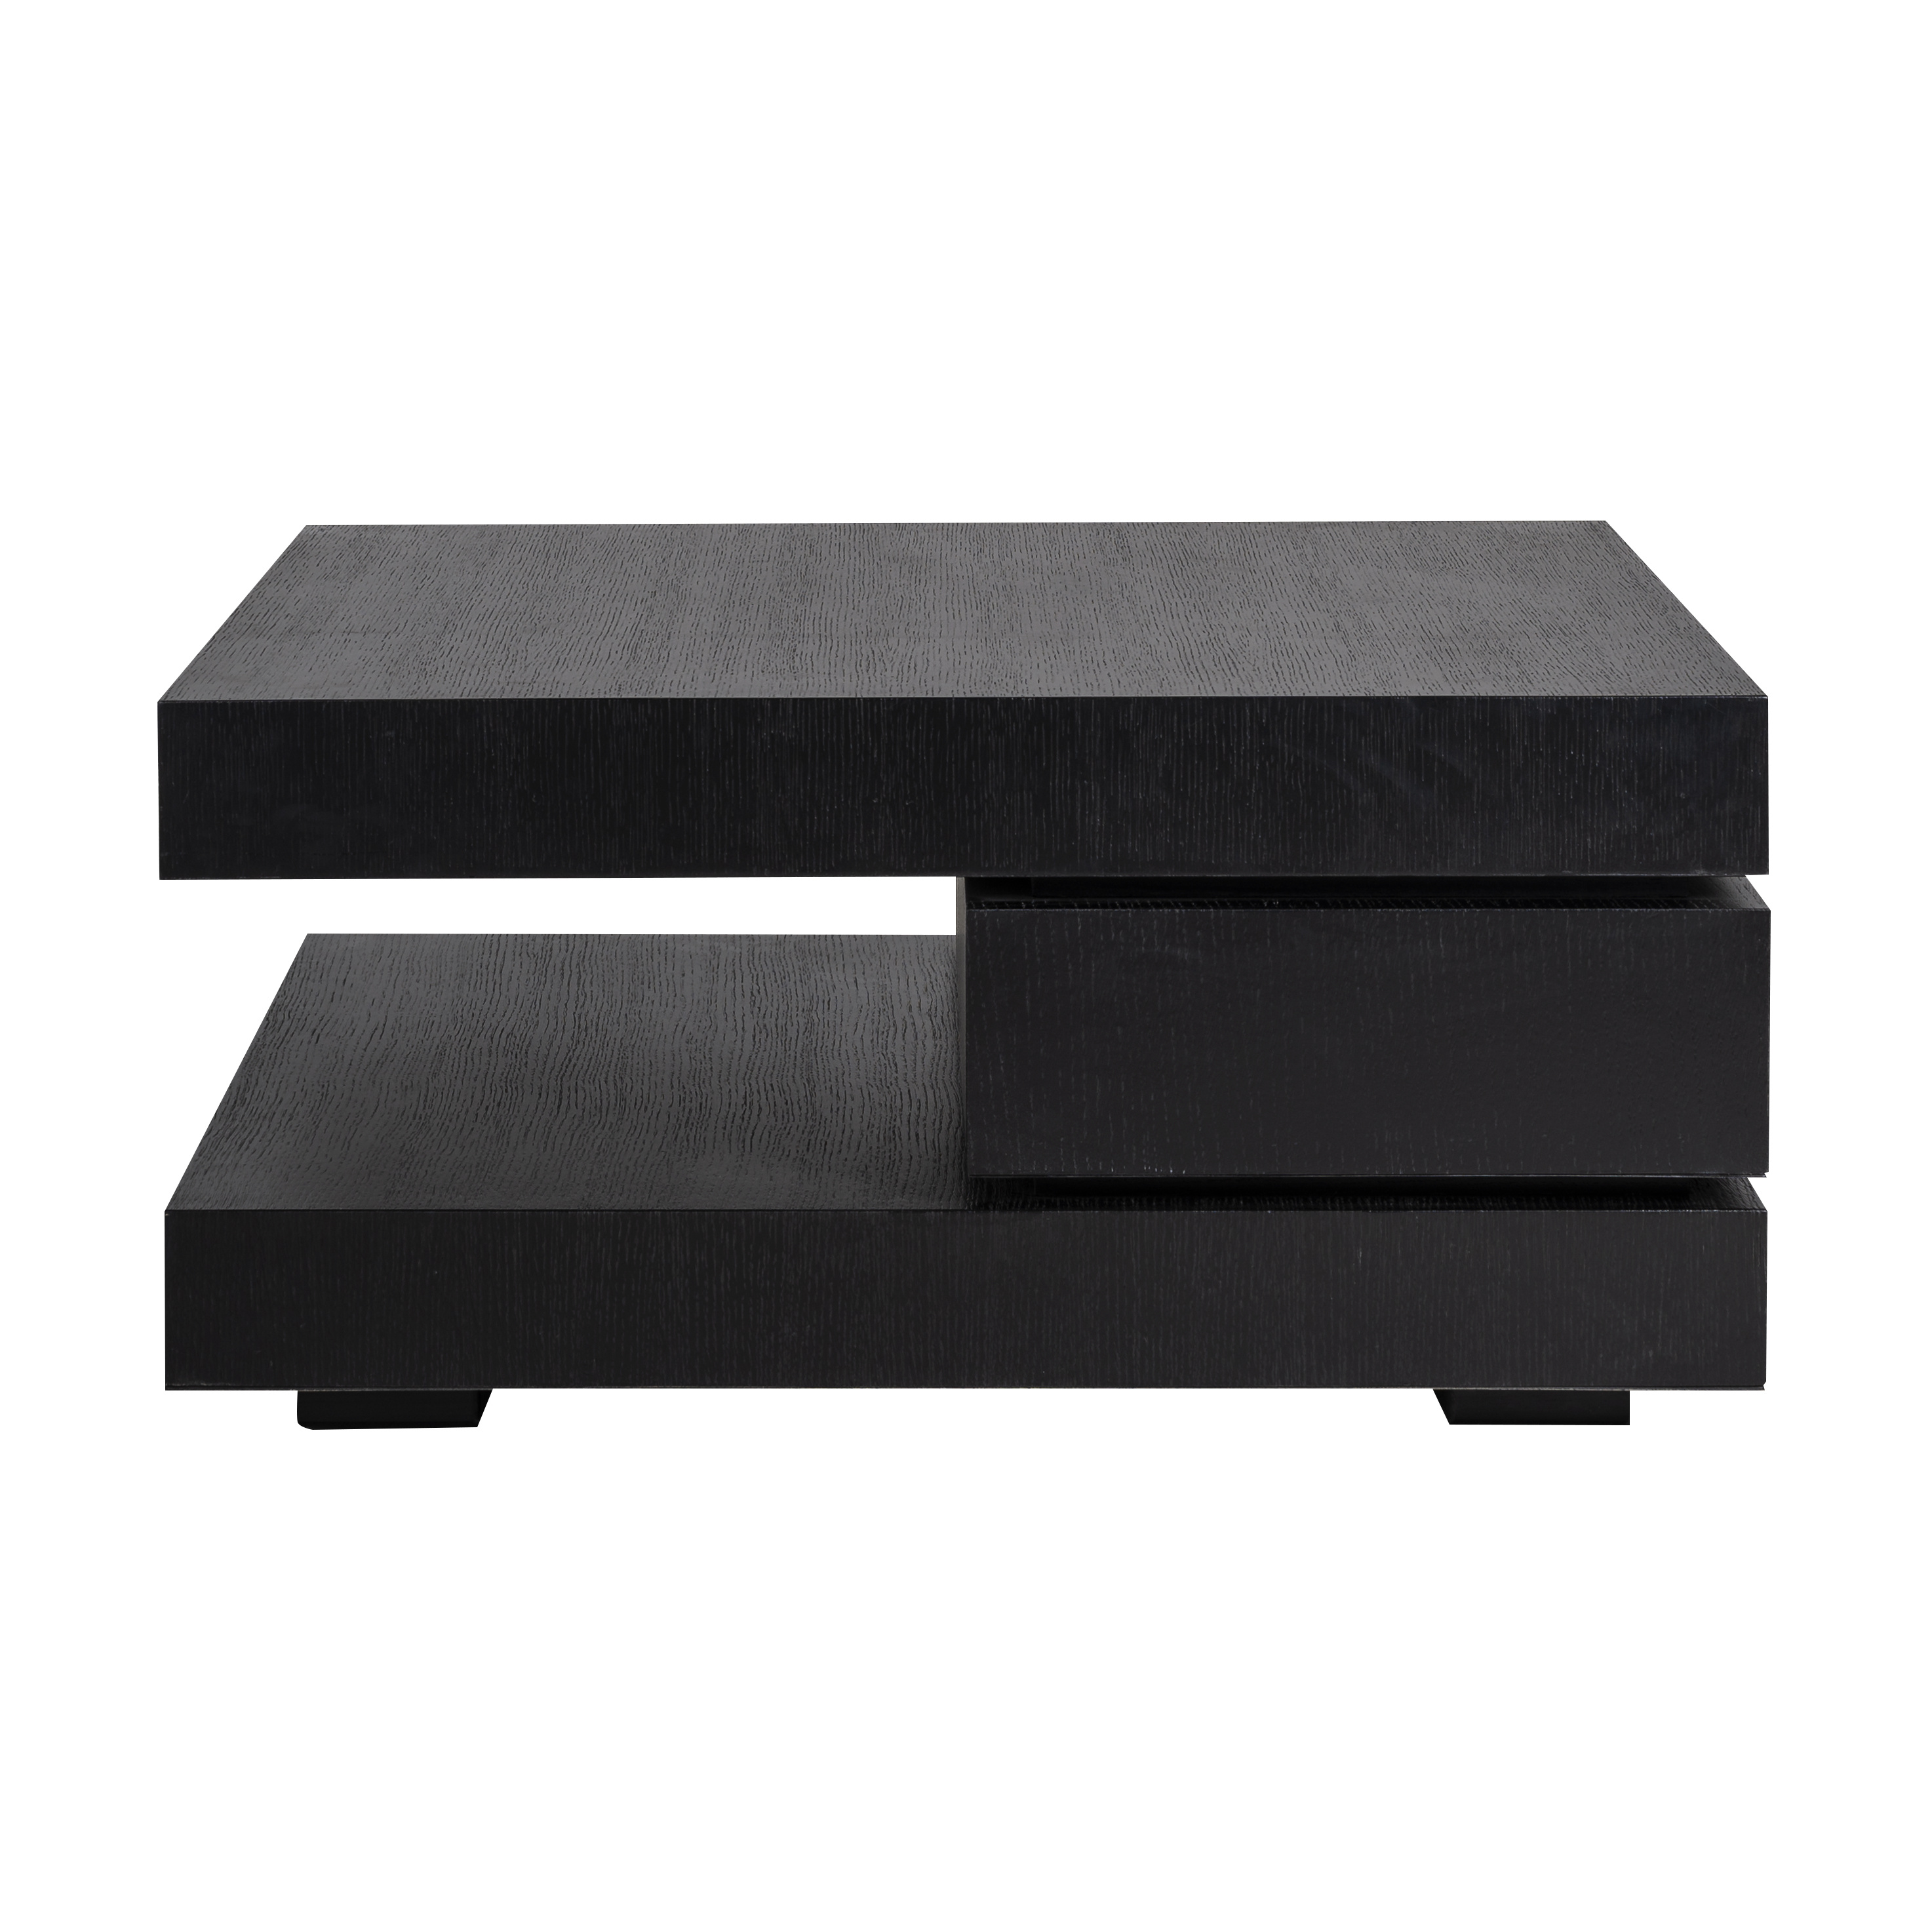 Nakamura Square Coffee Table